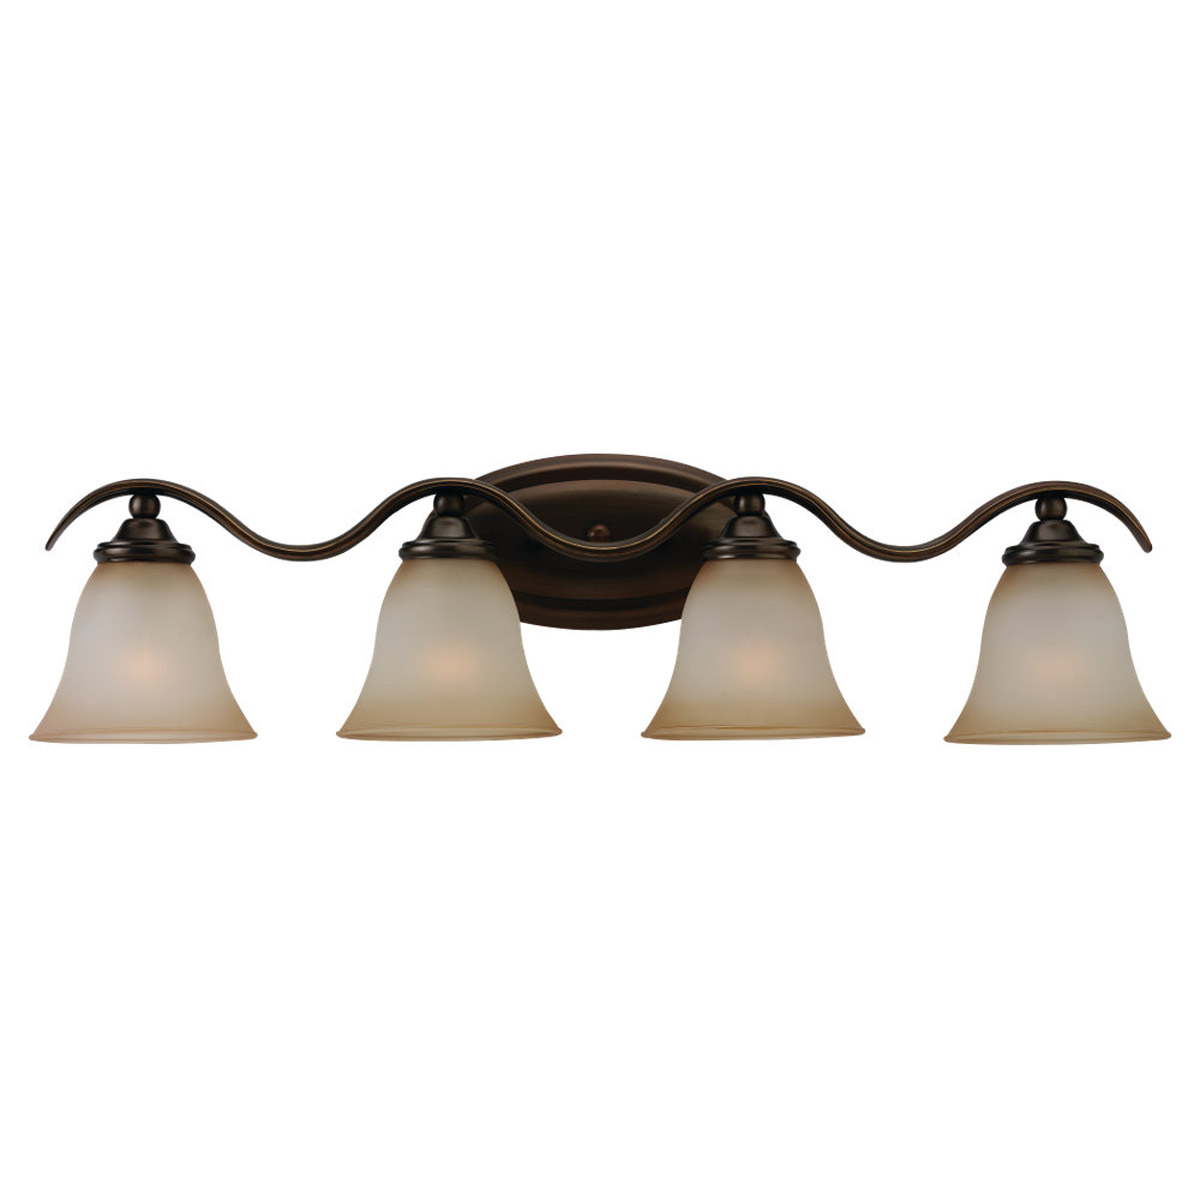 Sea Gull Lighting Rialto 4 Light Bath Vanity in Russet Bronze 44362-829 photo